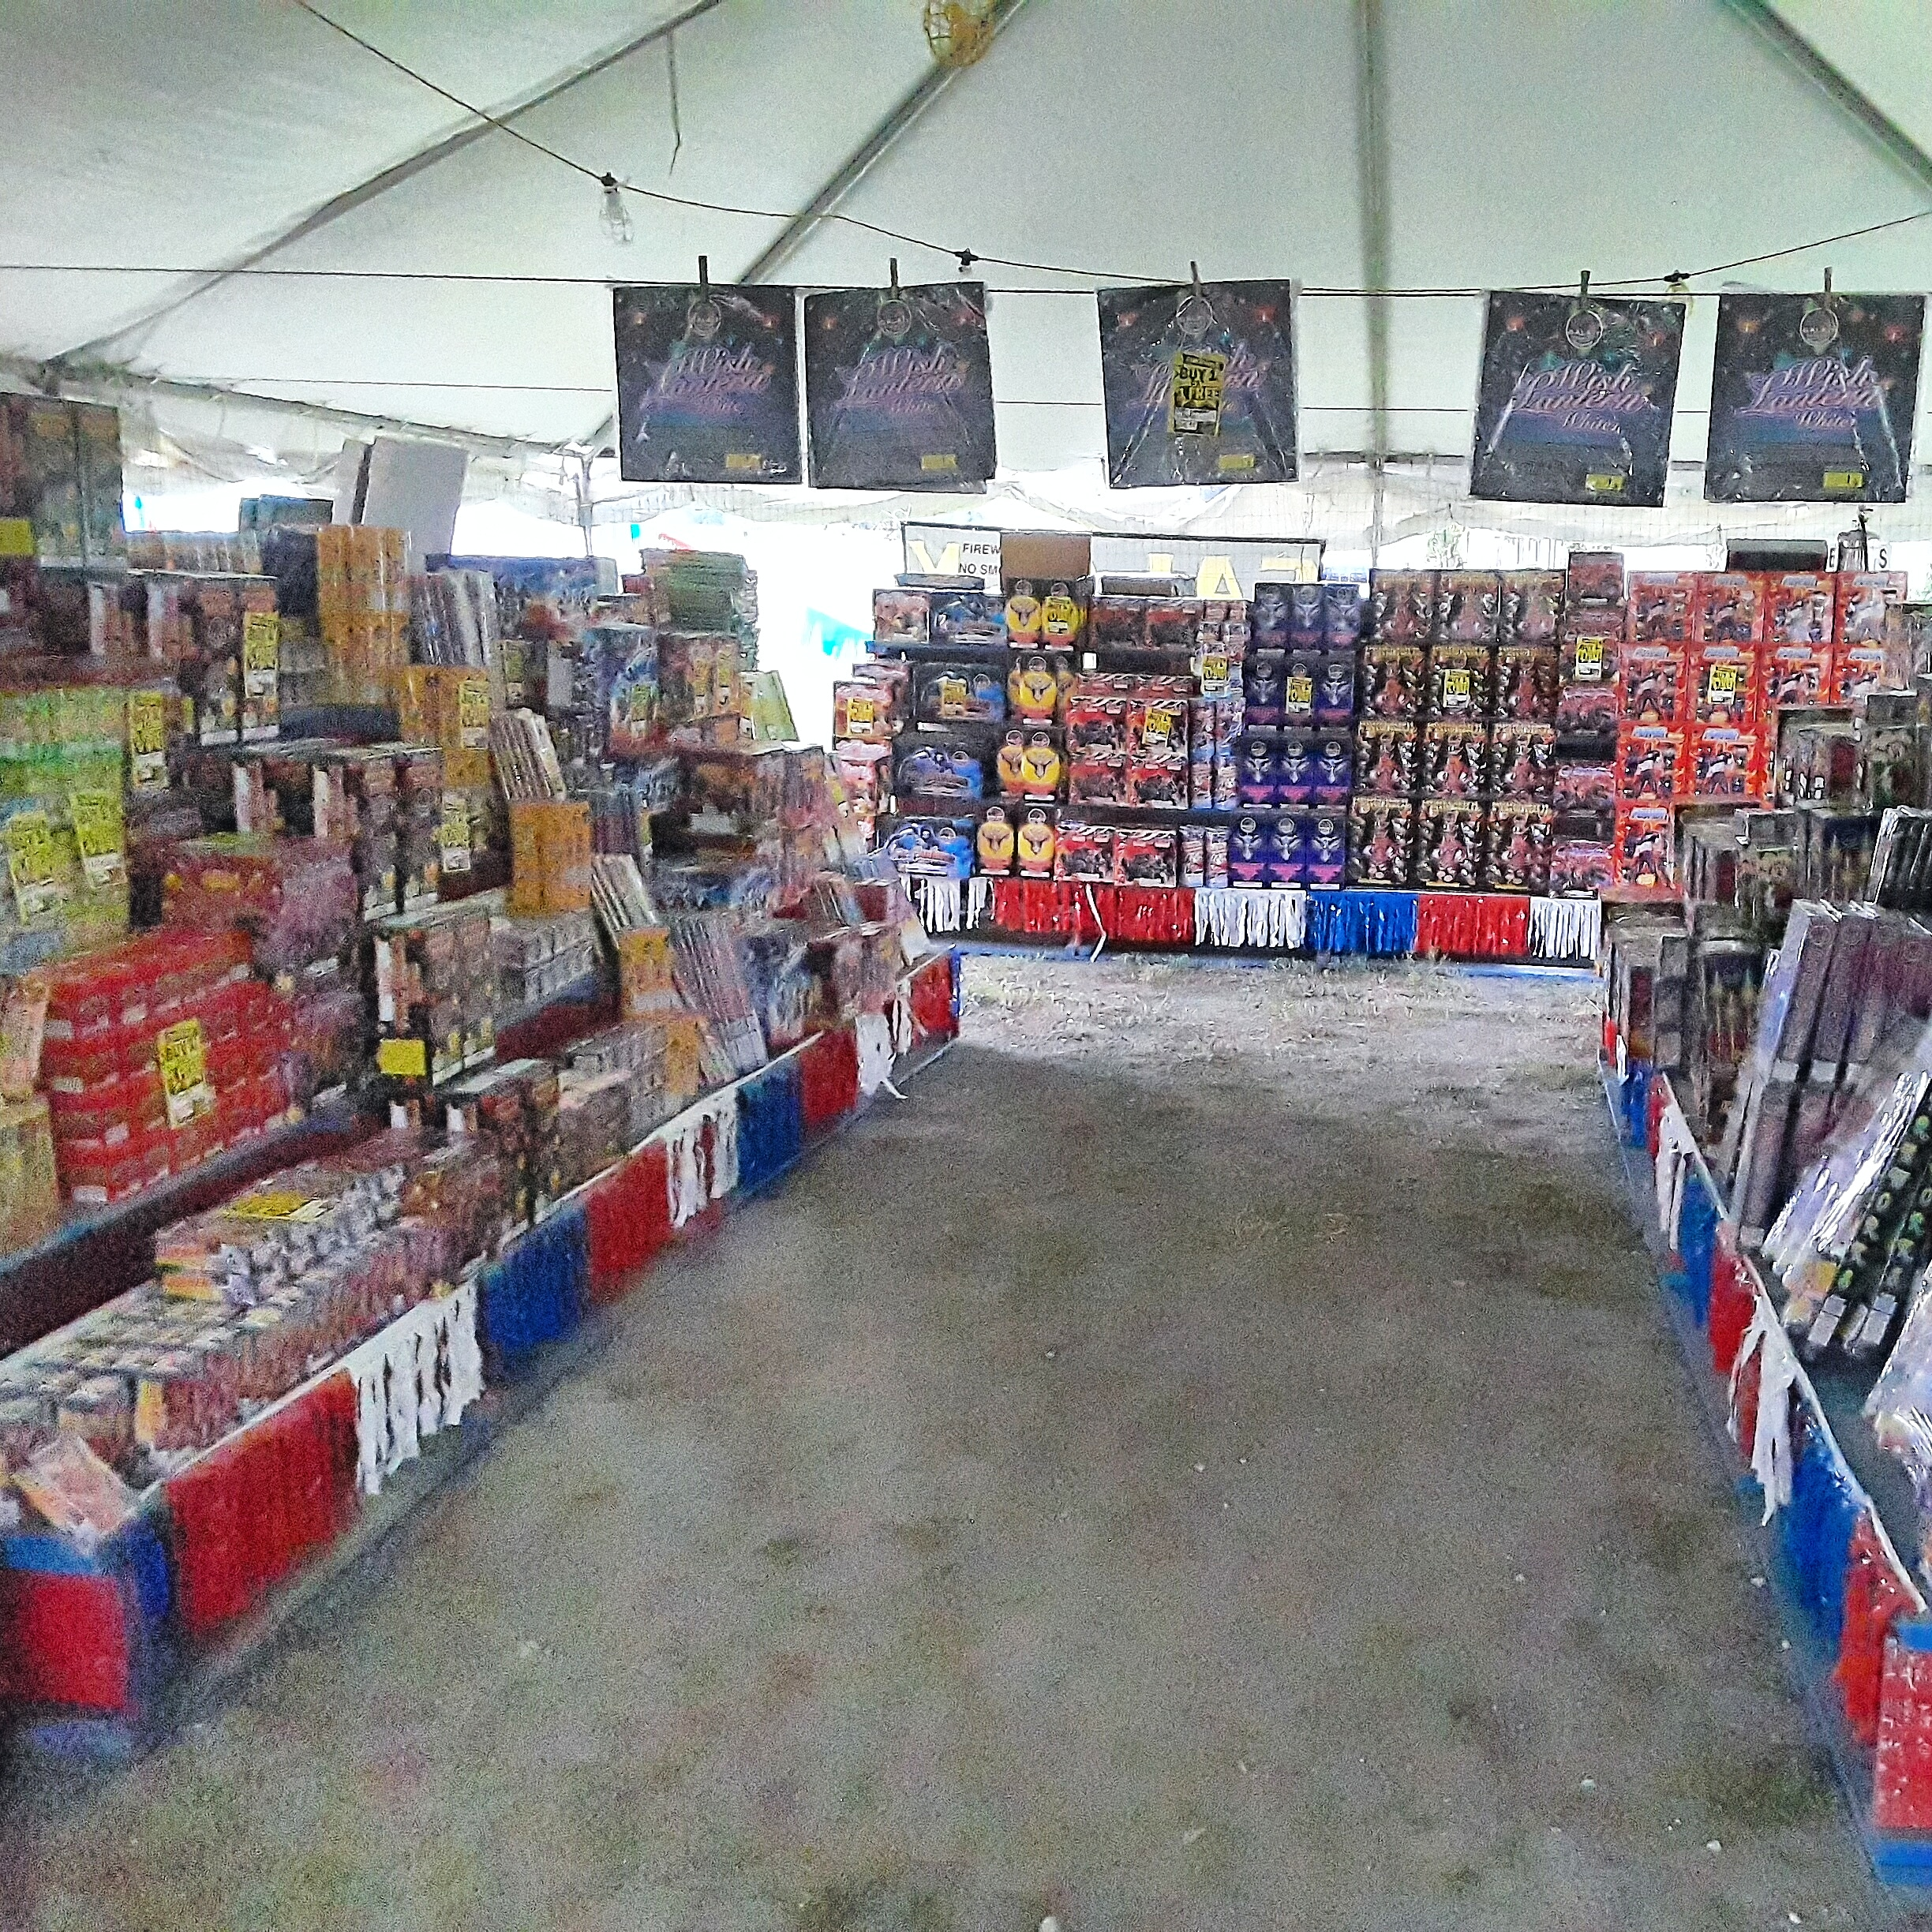 Once you pick-up your fireworks and pay for them. One will have to sign a release hold-harmless legal agreement against this store and the manufacturers. & 2018 Galaxy Fireworks Tents in Metro Orlando Review \u2013 Otownfun